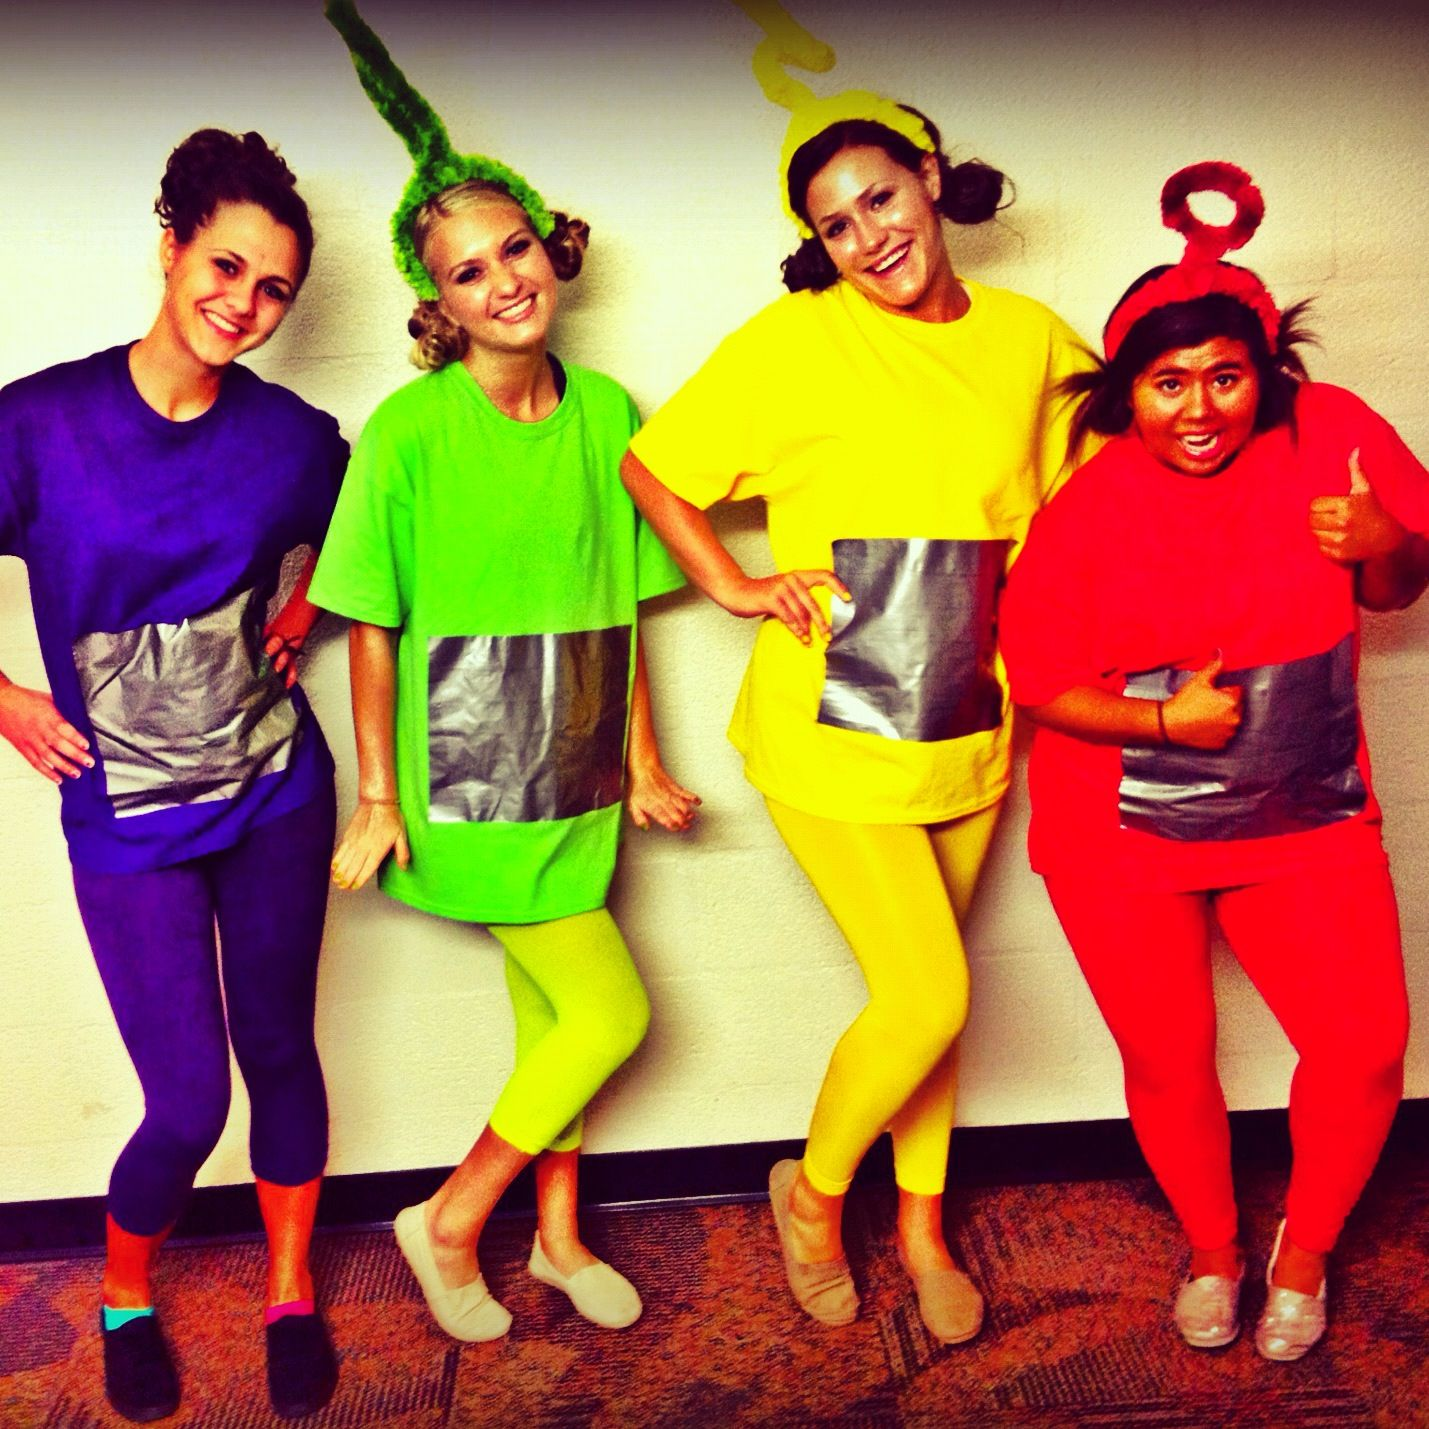 homemade teletubbies halloween costume and these are my friends love them